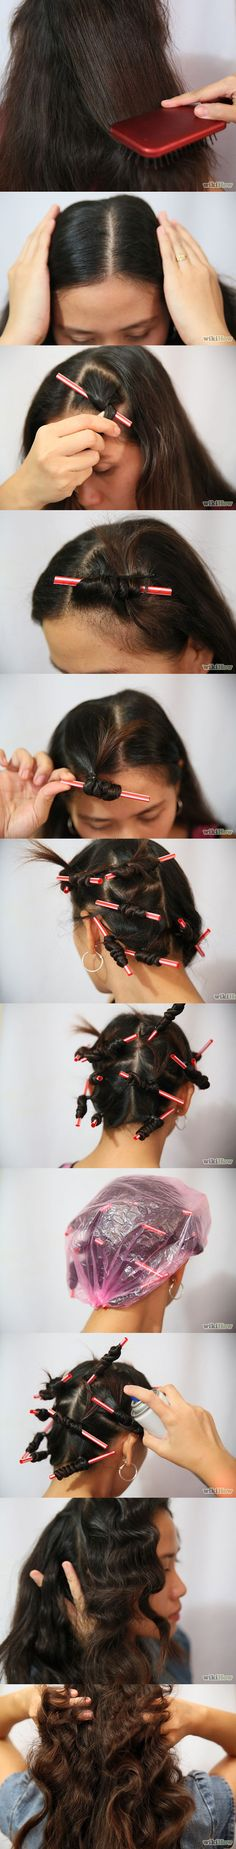 6 Easy Ways to Curl Your Hair with Drinking Straws / Straw Set Tutorials - Fashion Diva Design